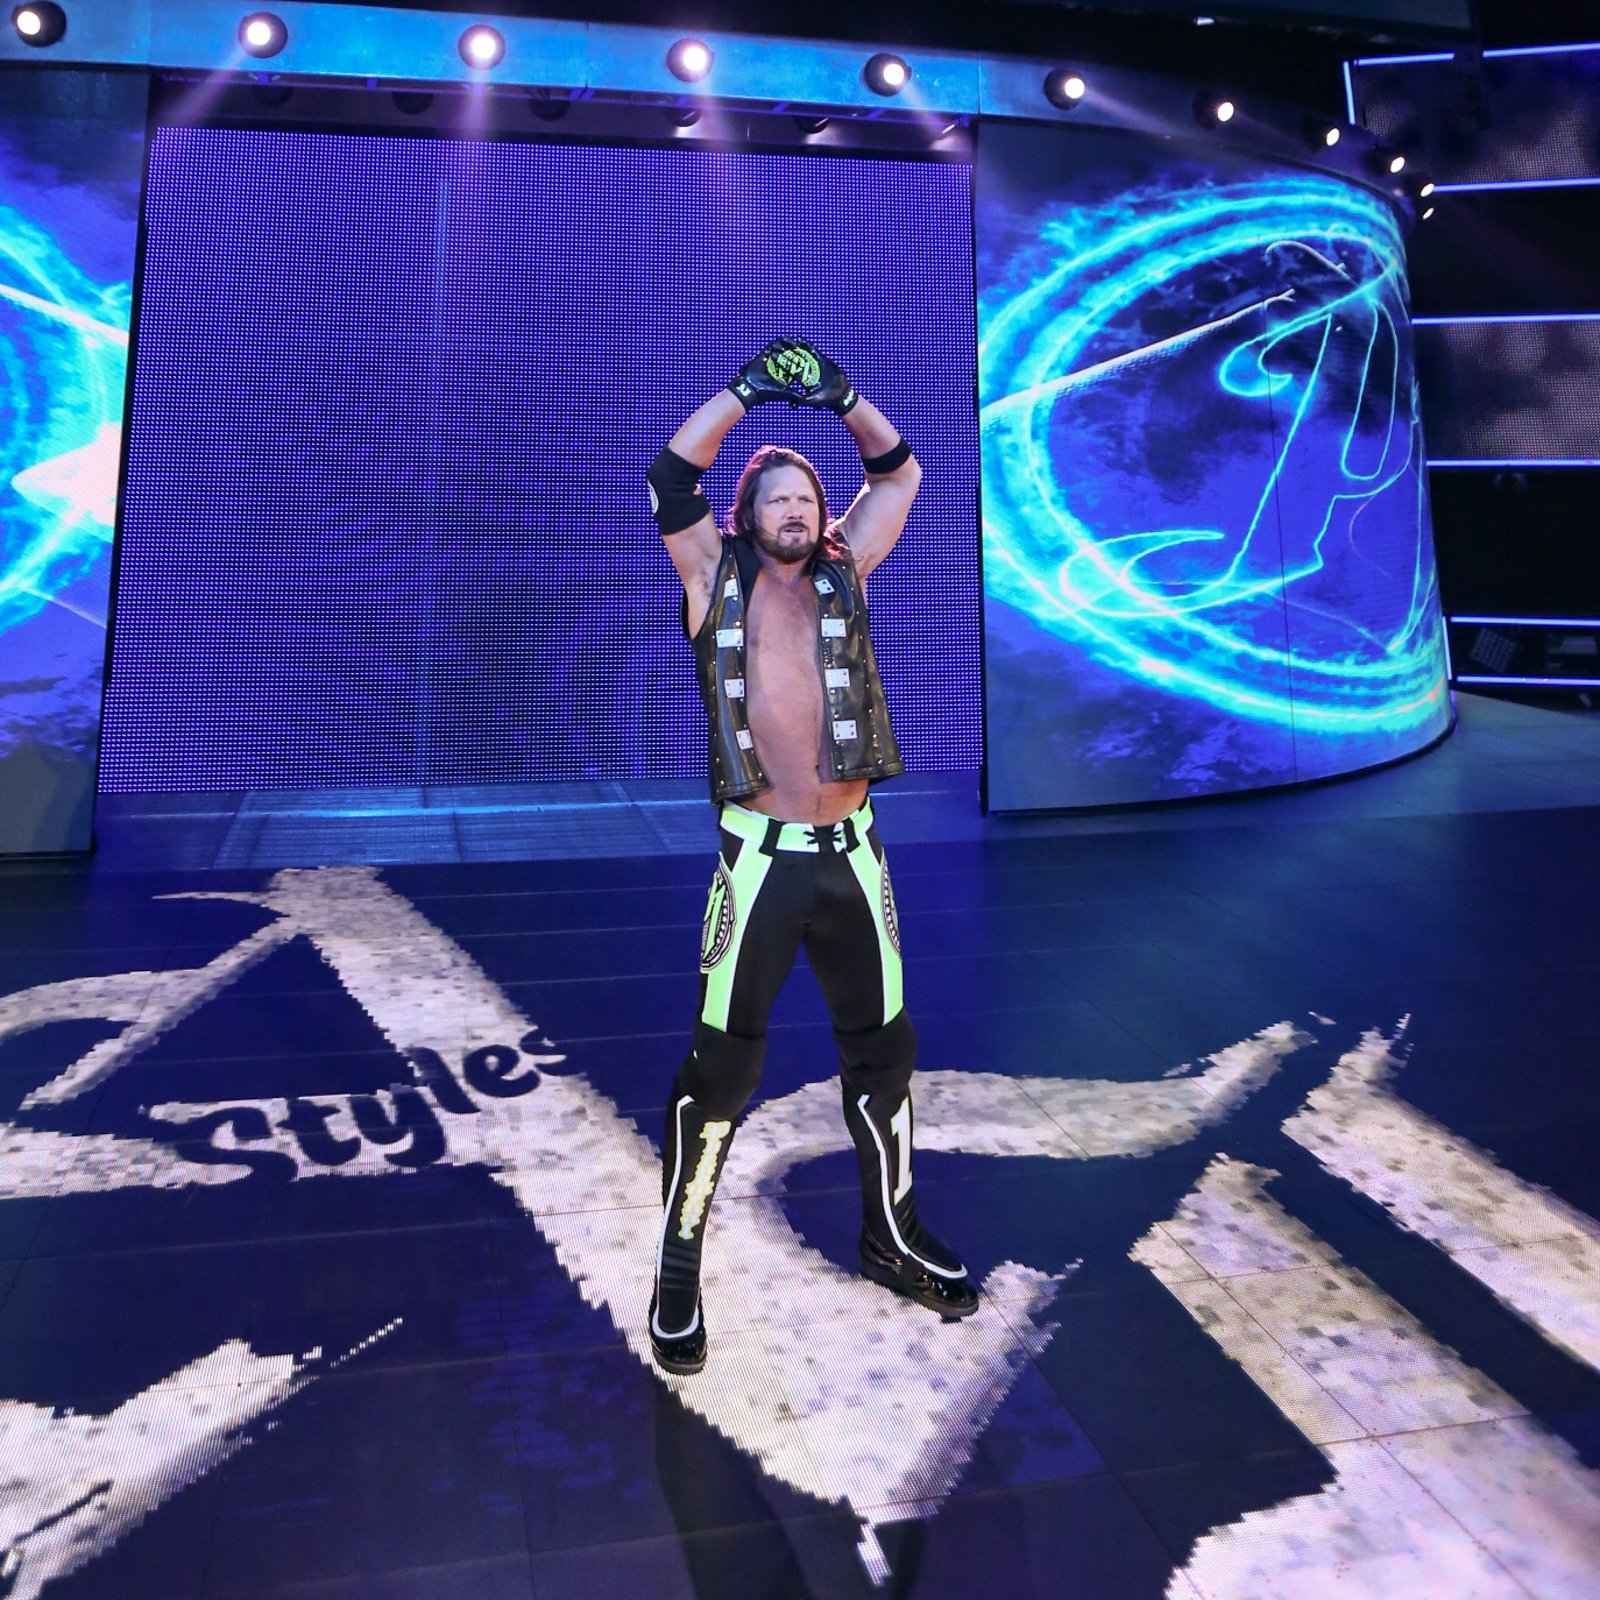 AJ Styles is all business as he seeks retribution against The Miz.